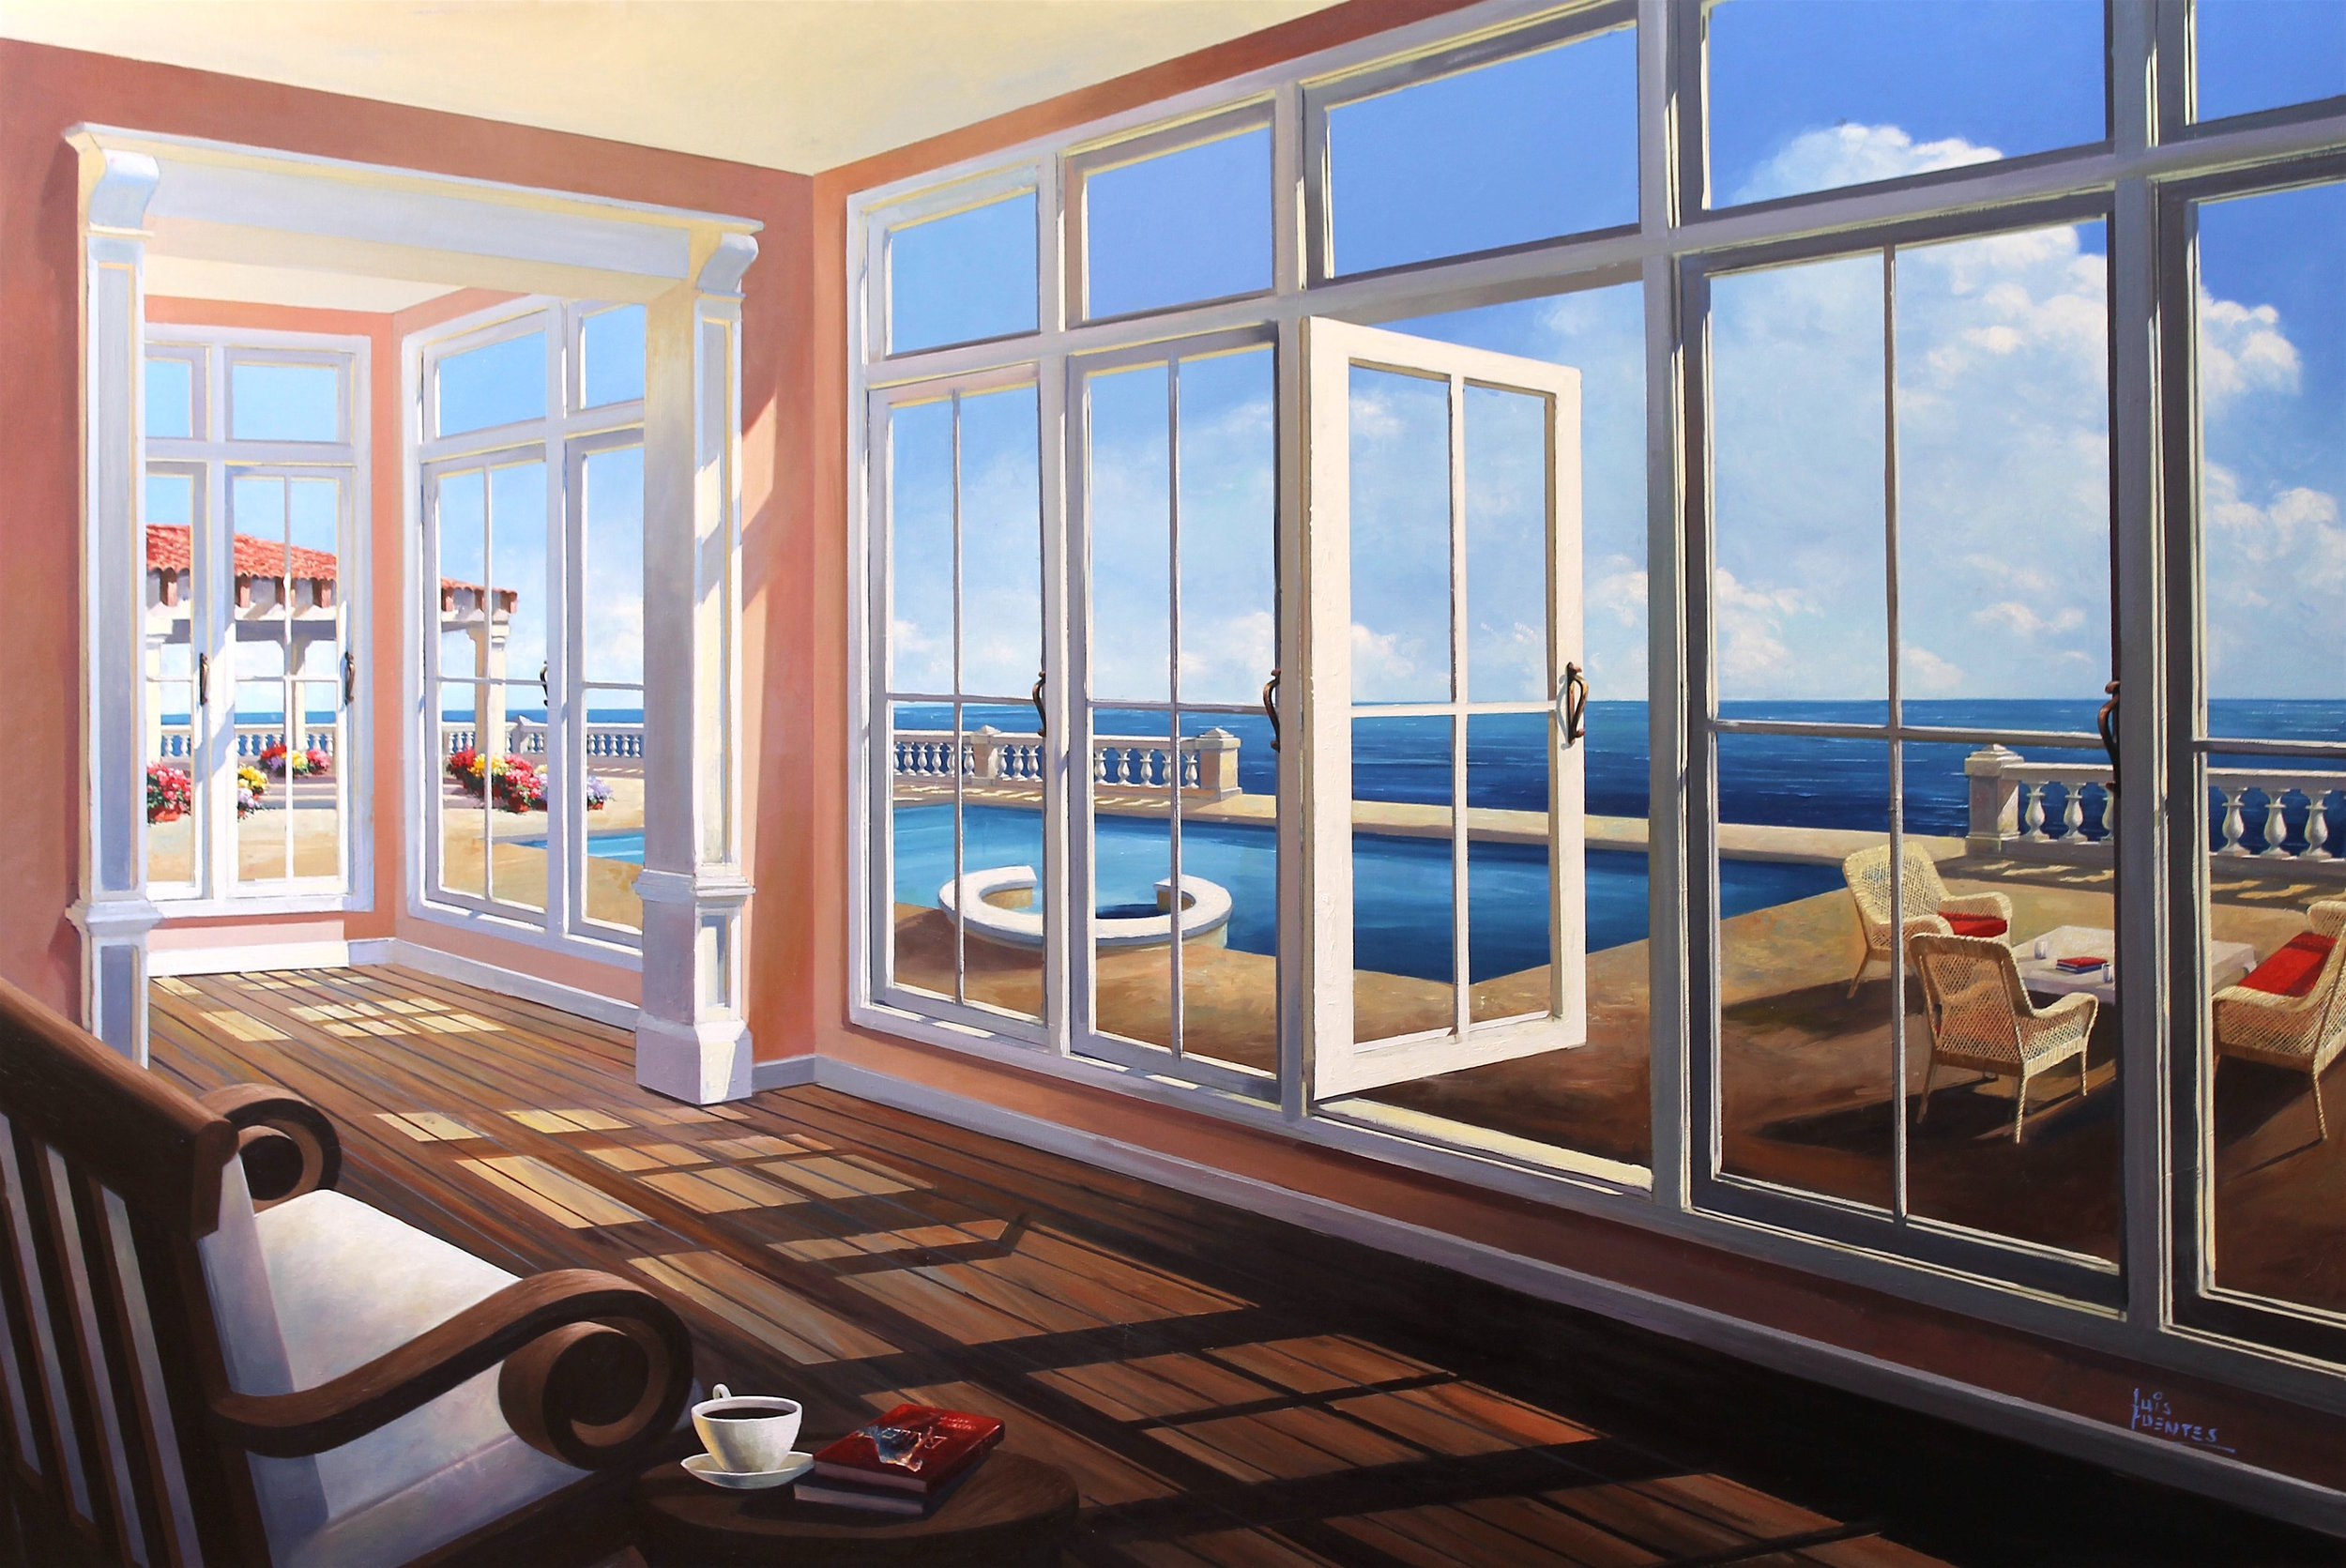 Luis Fuentes Afternoon by the Sea 100x150cm £5500.JPG